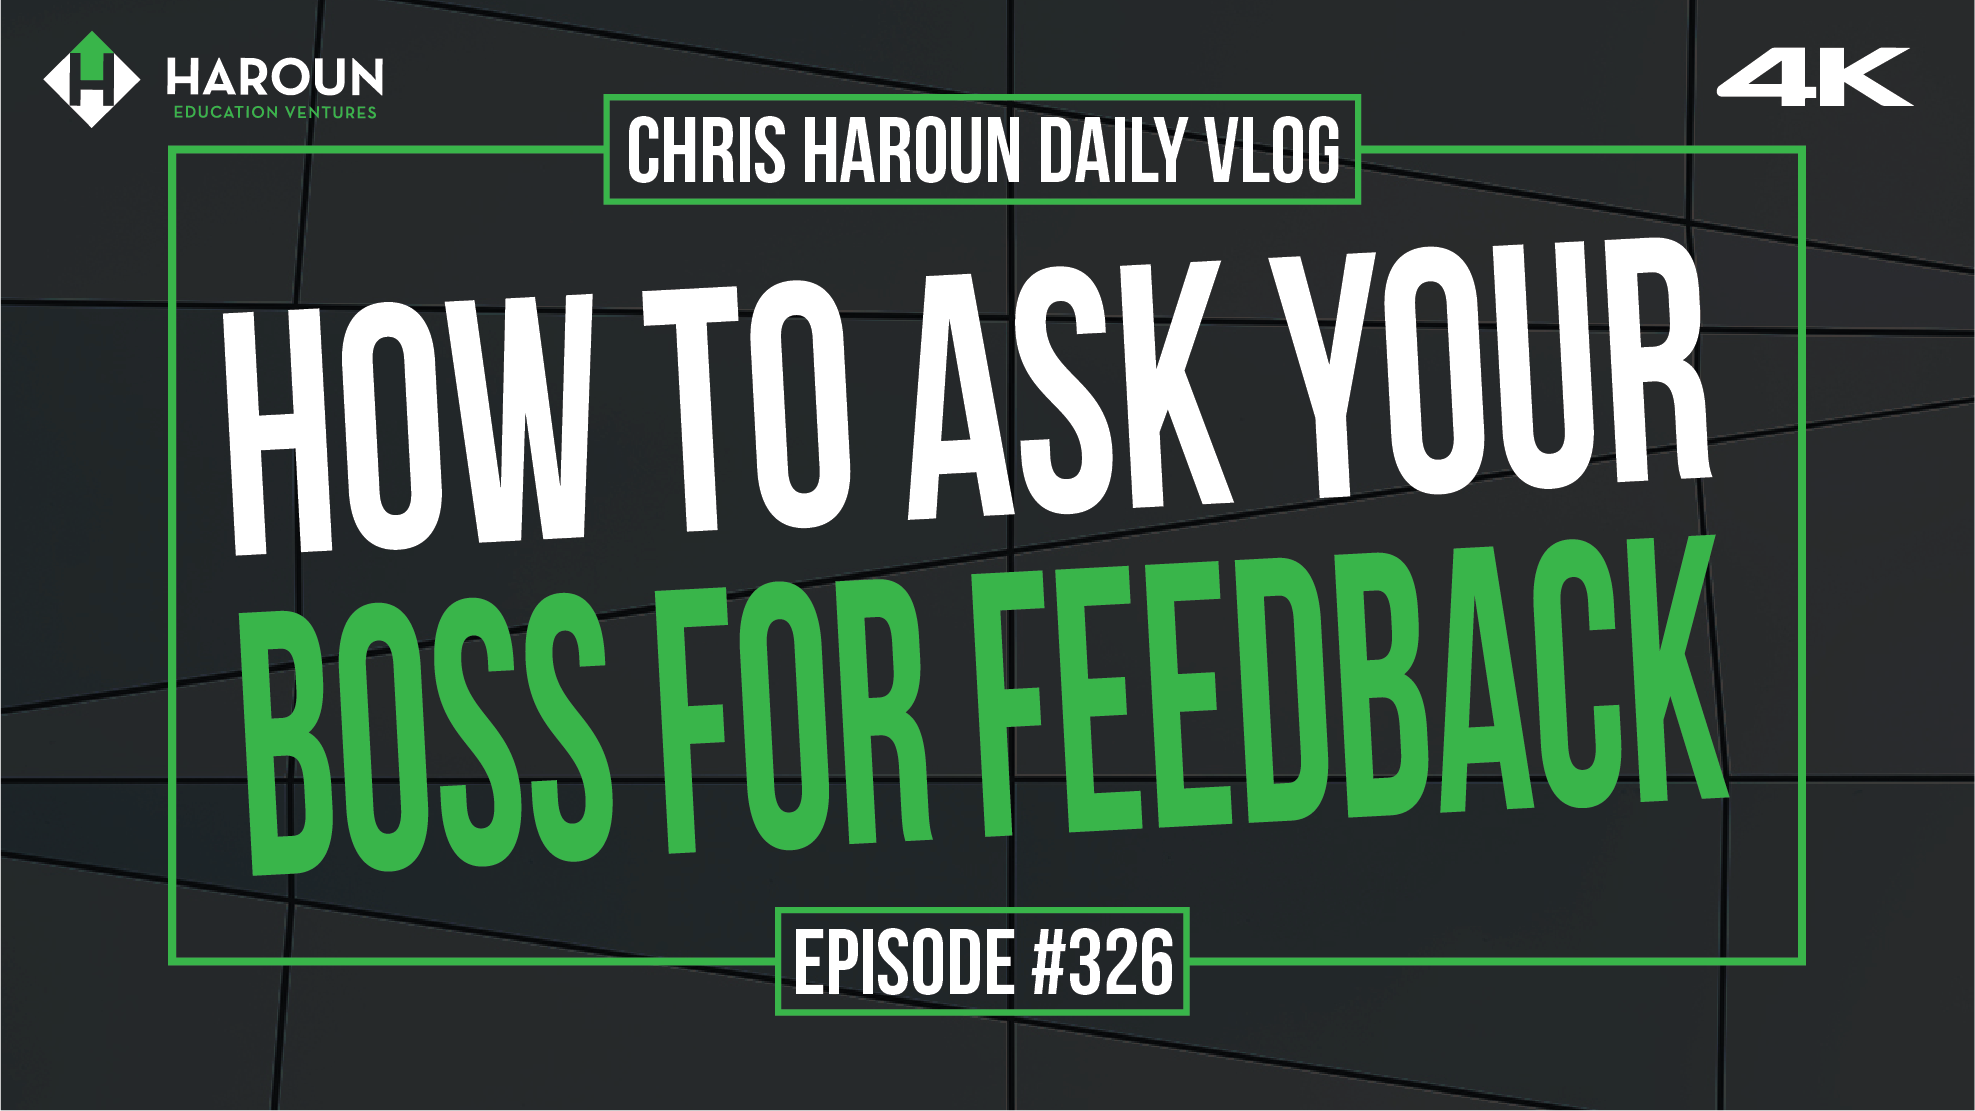 VLOG_326_6_22_2019_How to Ask Your Boss for Feedback.png